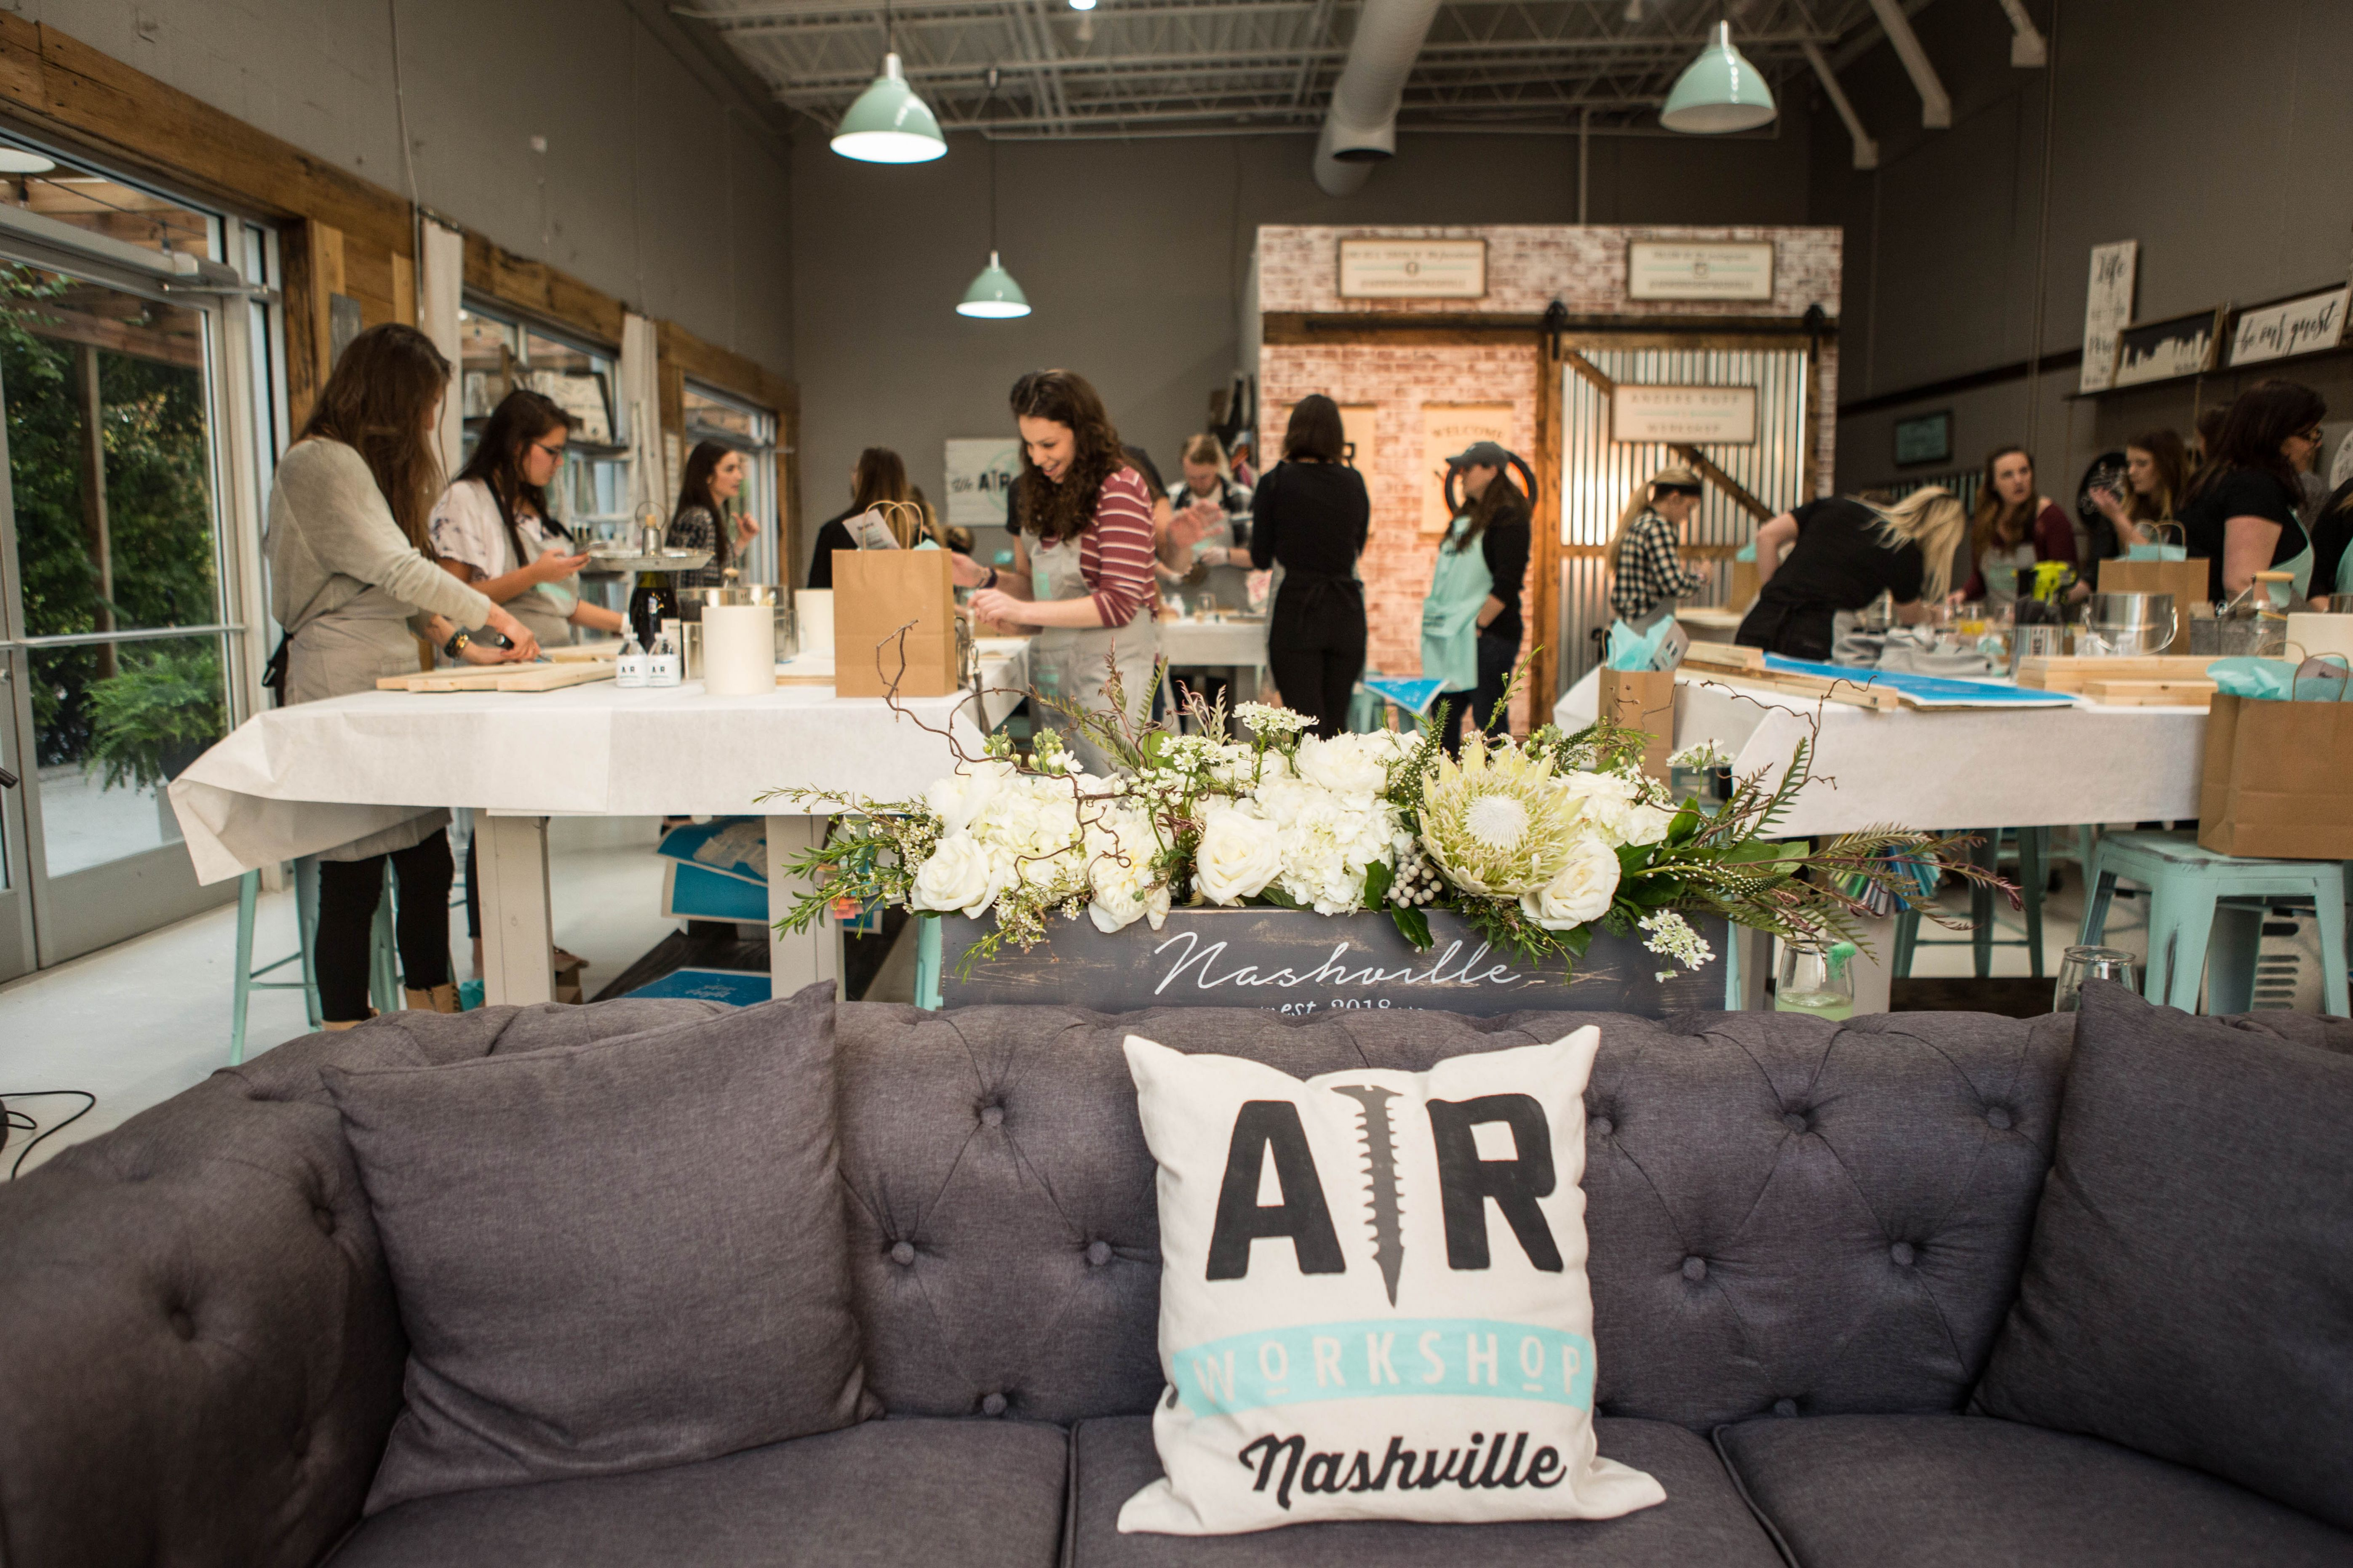 AR Workshop Nashville Brings DIY Home Décor Options to Tennessee